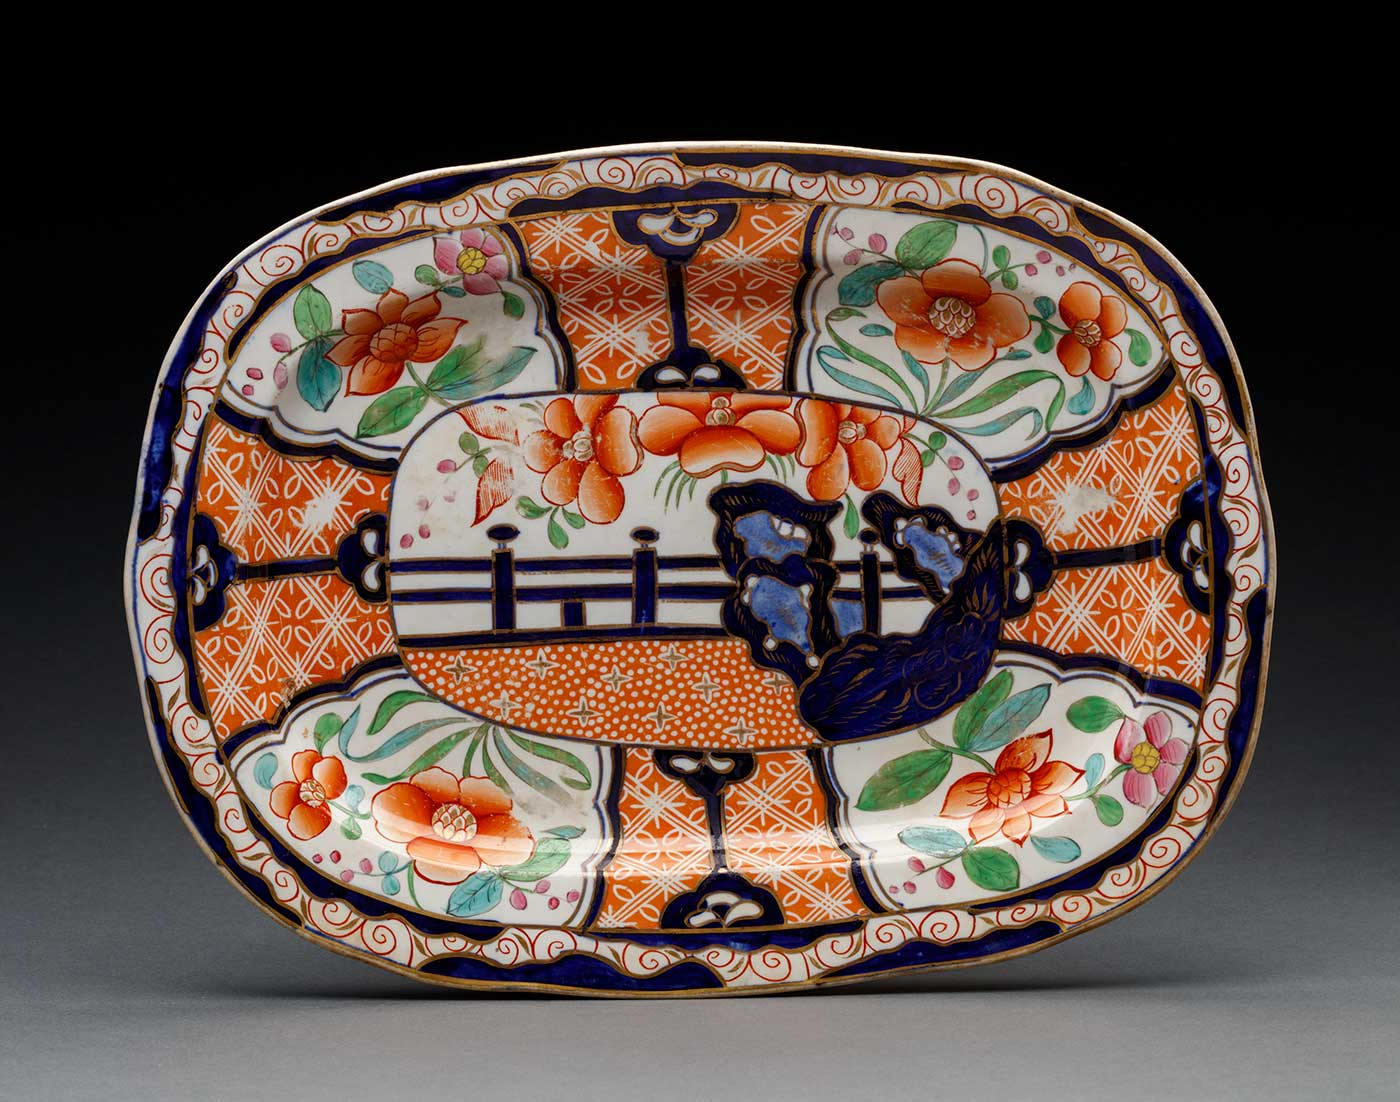 A rounded rectangular platter featuring an orange, white, blue, pink, green, yellow, and gold floral design. - click to view larger image